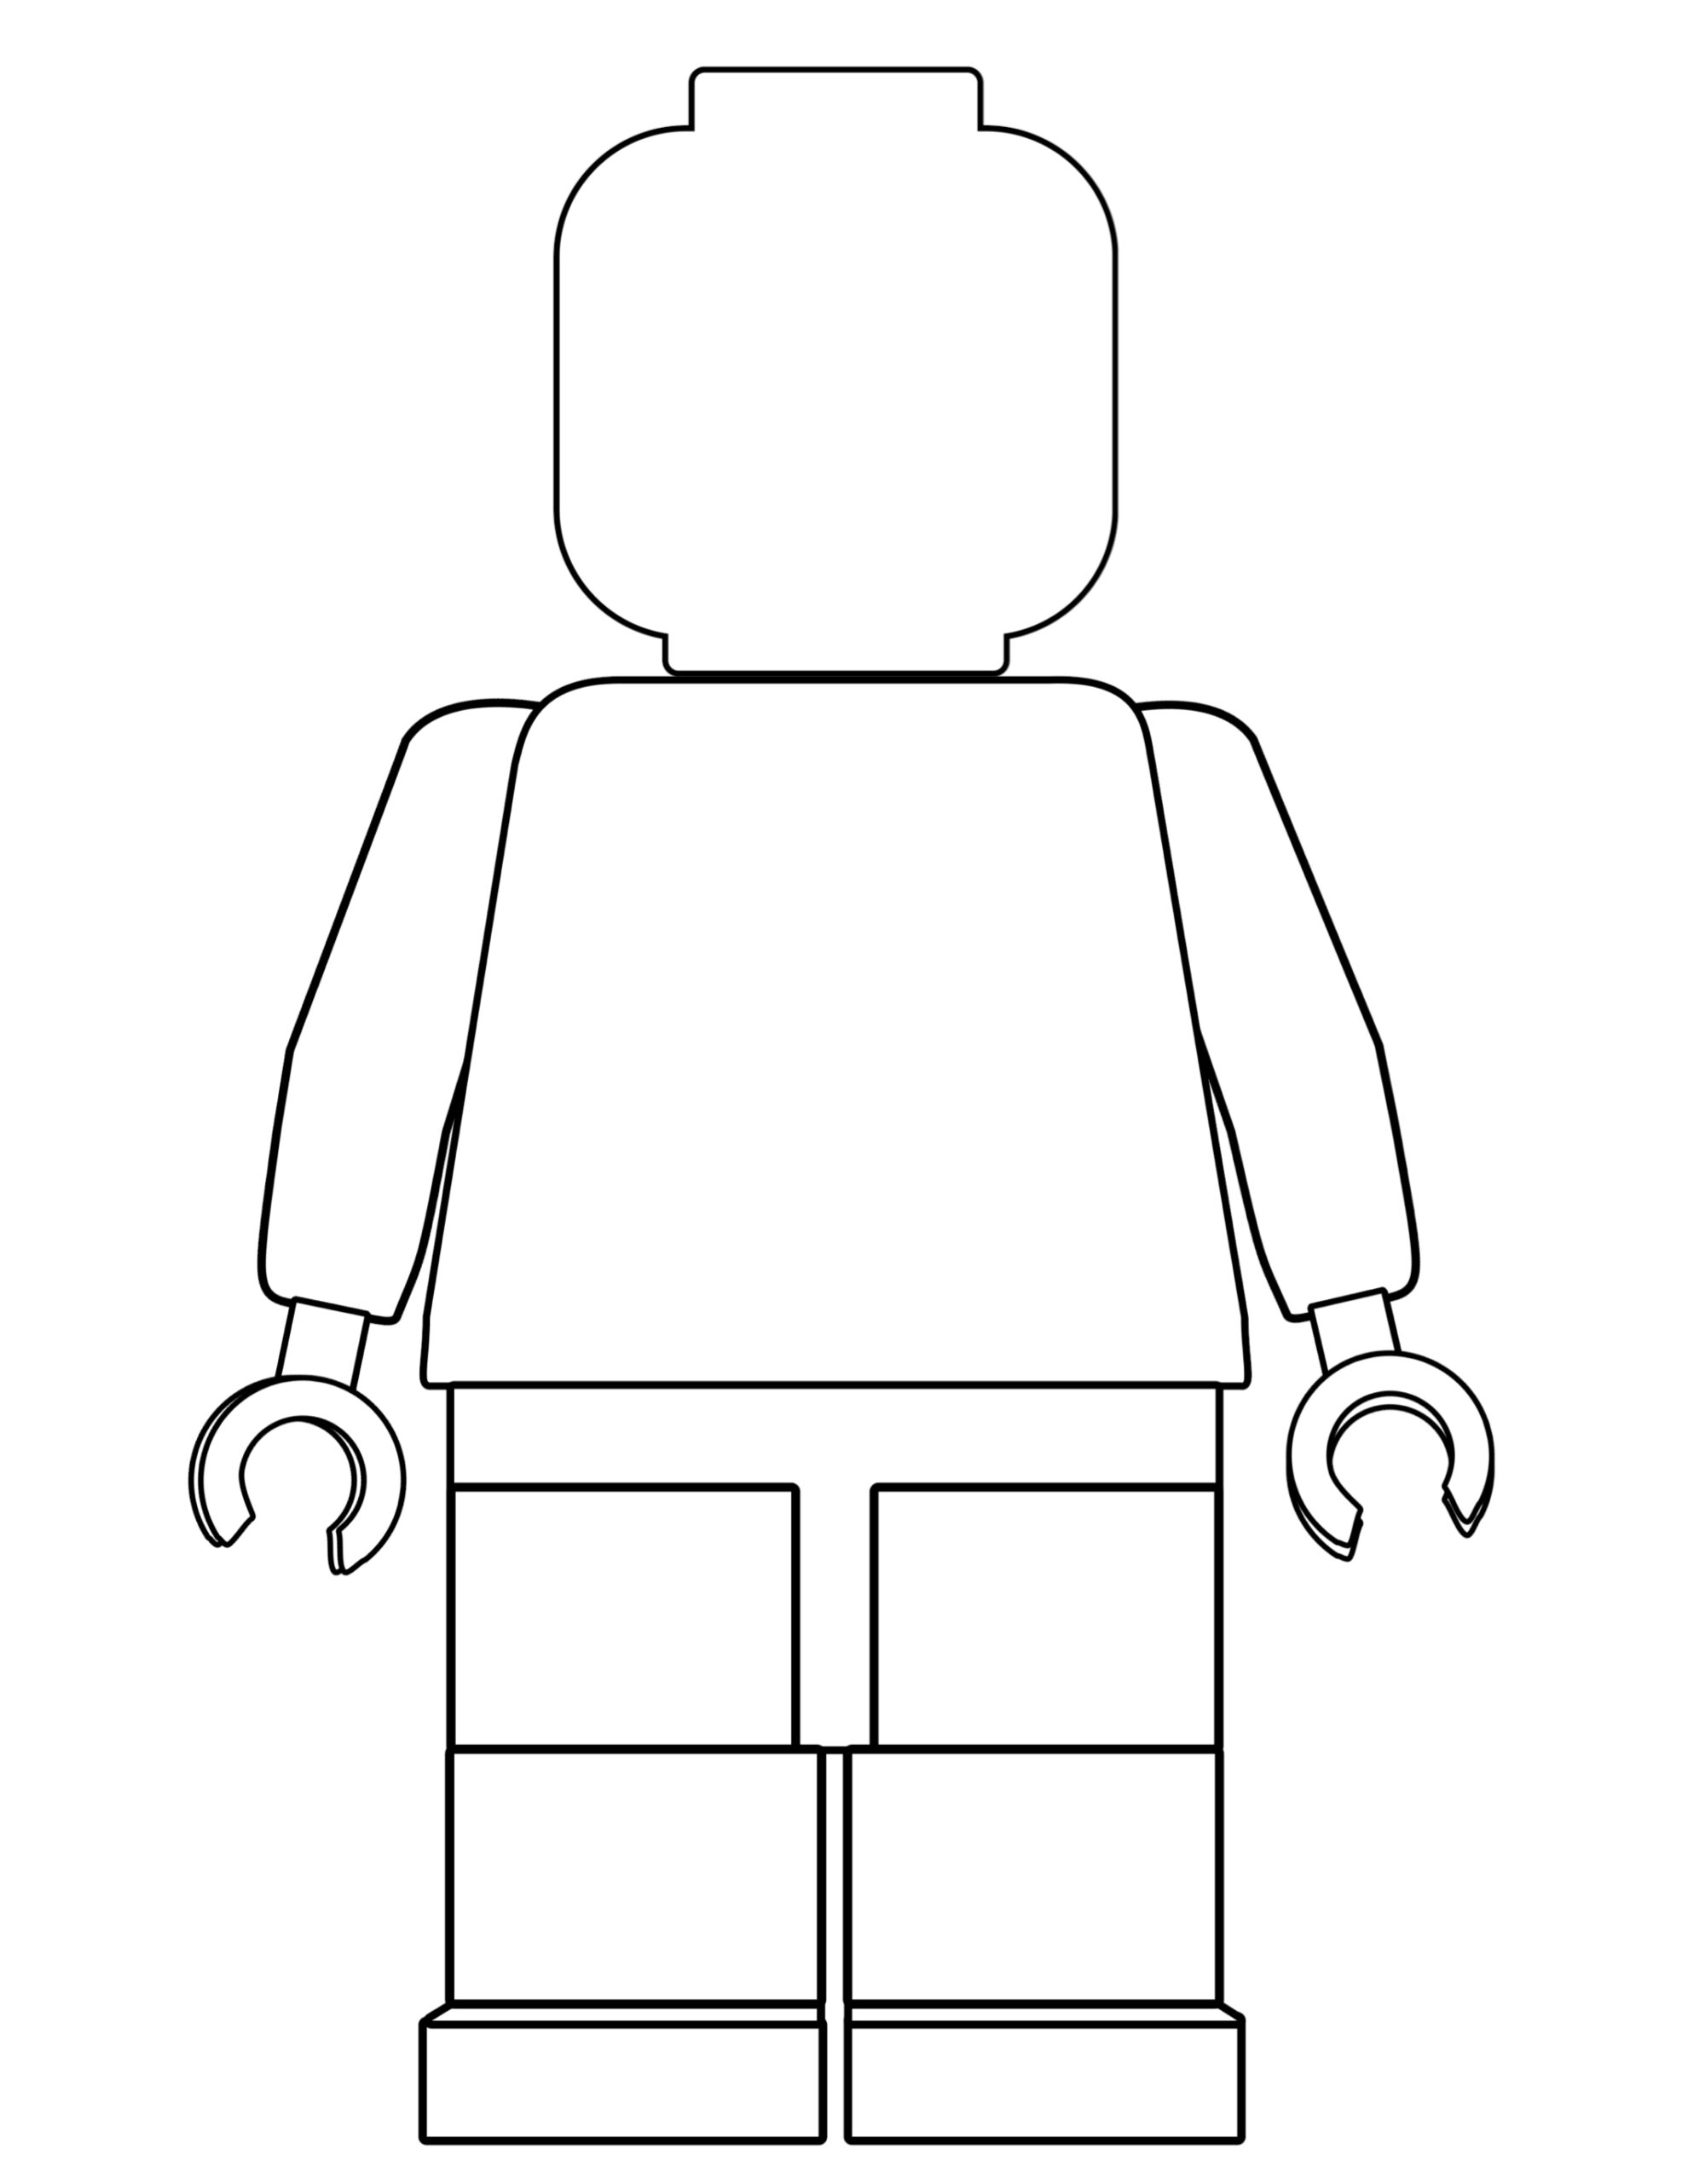 image regarding Printable Lego Coloring Pages titled Cost-free Printable Lego Coloring Webpages - Paper Path Design and style